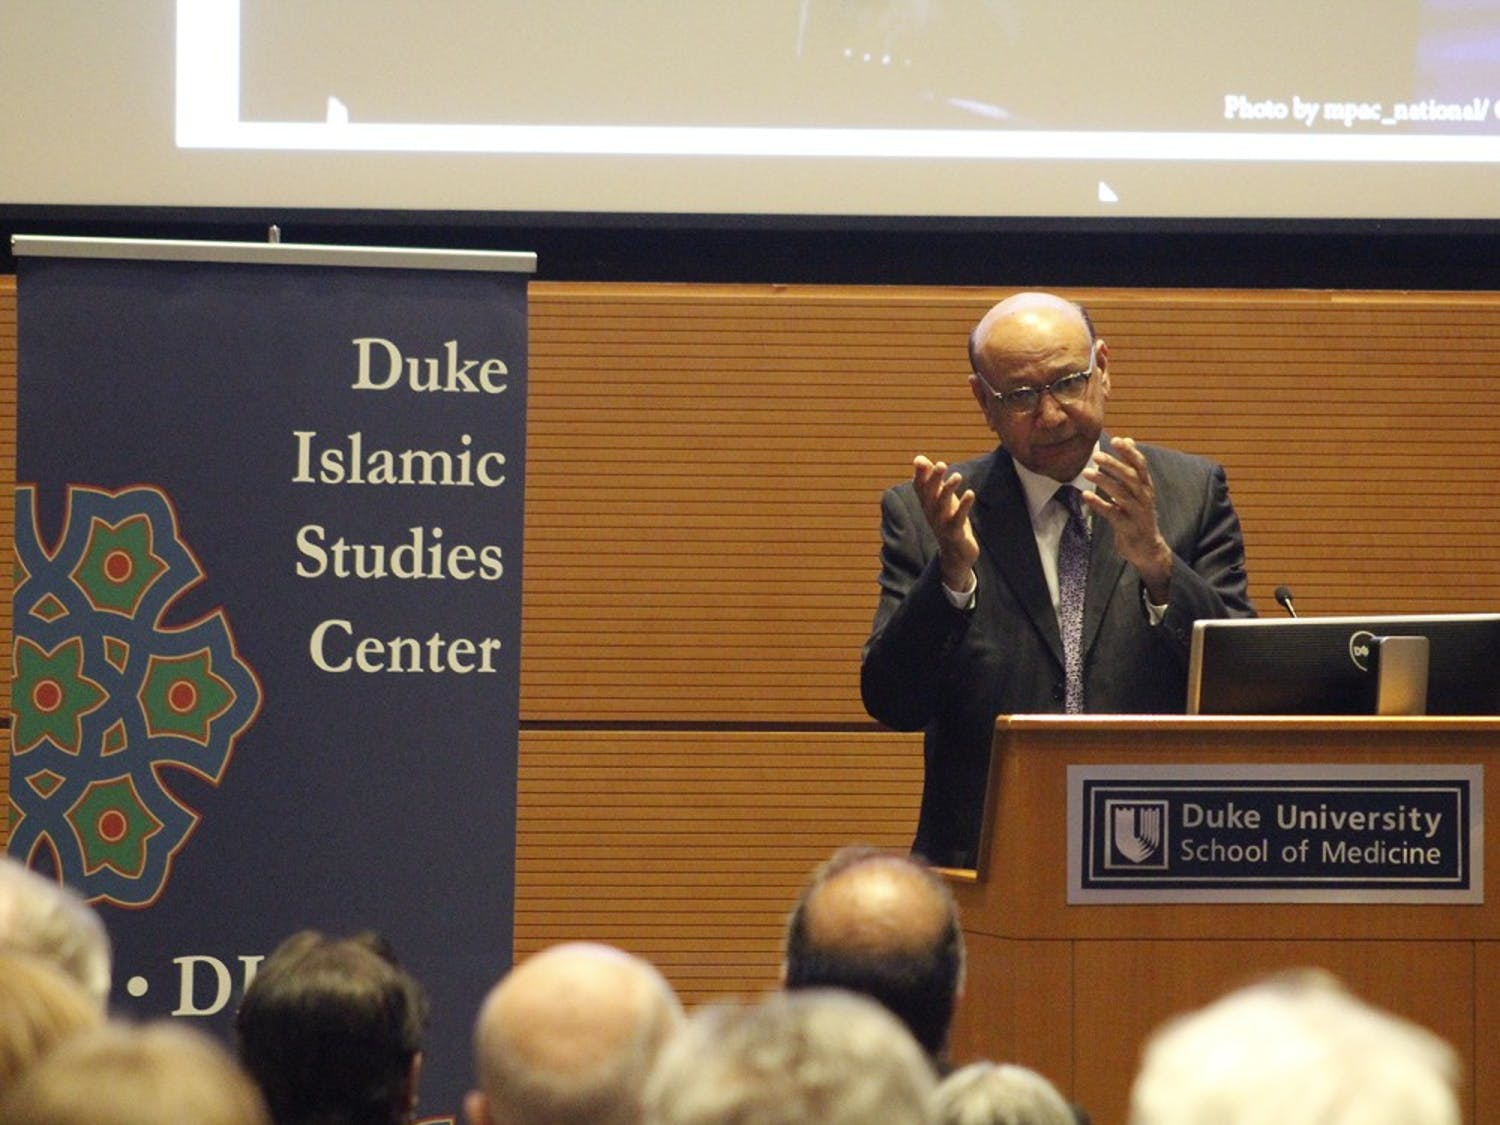 Khzir Khan, father of a Muslim American soldier and speaker at the Democratic National Convention spoke at Duke University Thursday about his experience in the election cycle.